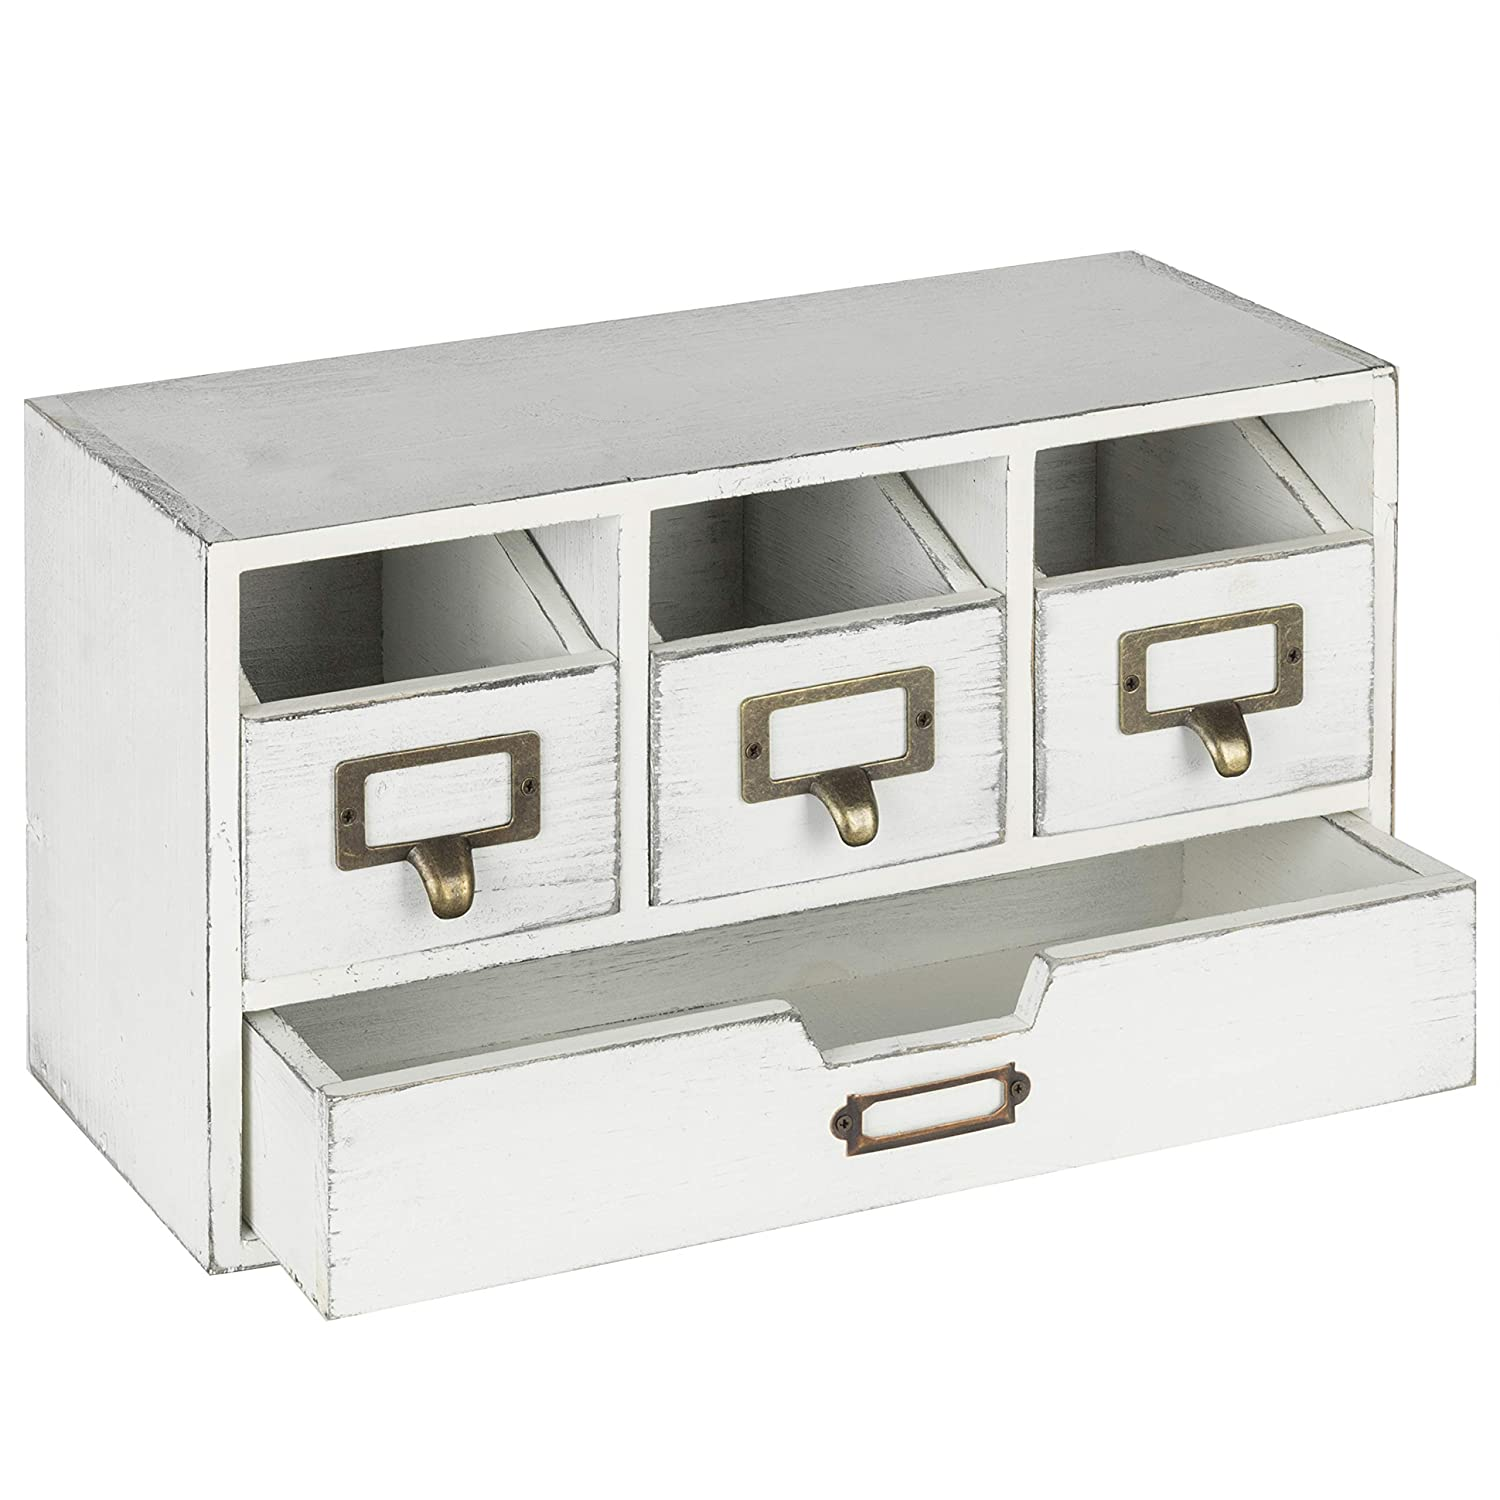 MyGift Vintage White Wood 4-Drawer Desktop Organizer